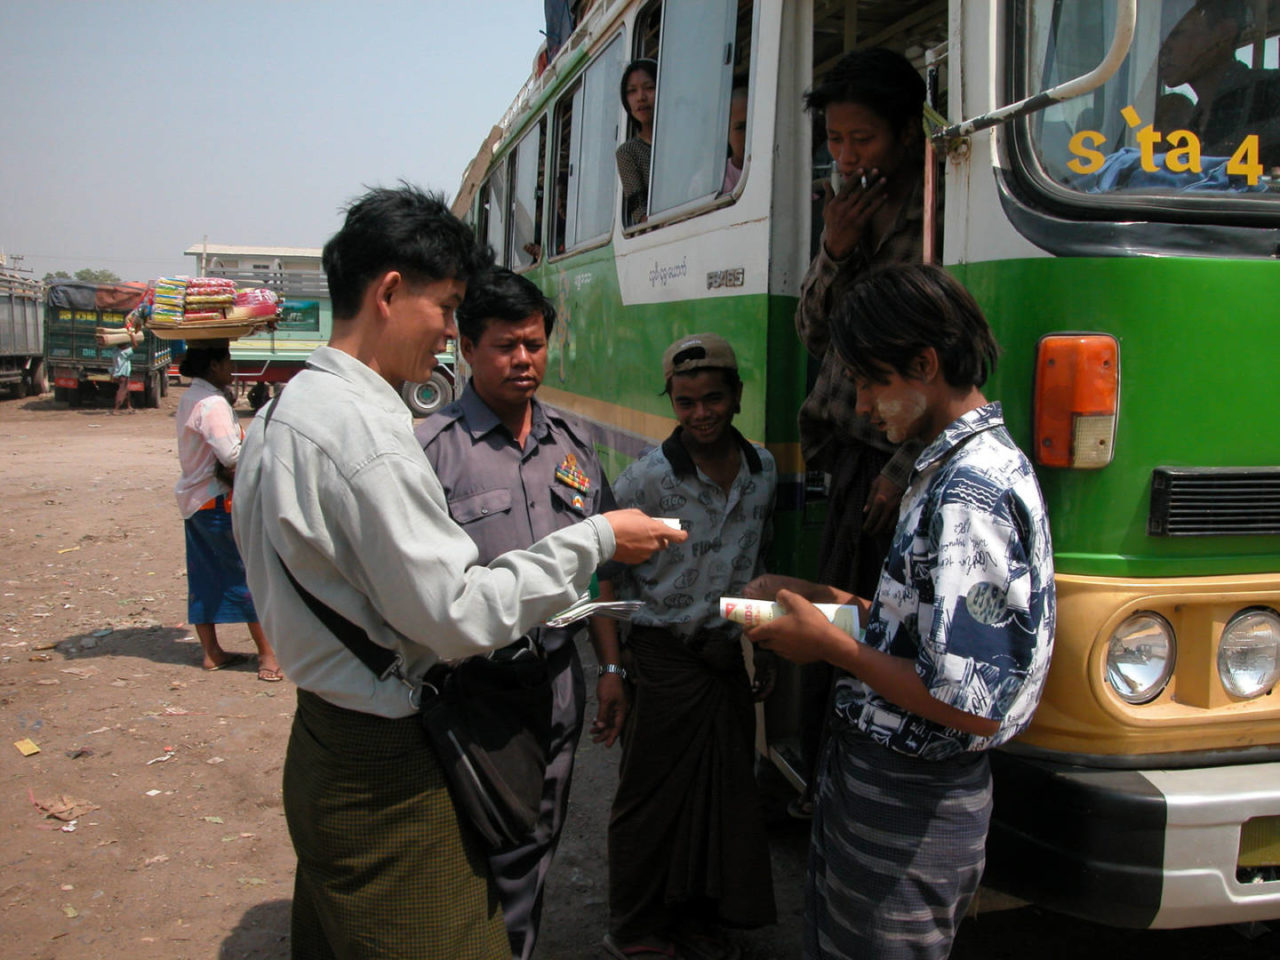 World Vision Myanmar's Community Development Facilitator Saing Zaw Hmun hands out literature about the risks of HIV/AIDS to bus and truck drivers, ticket sellers, route operators and market traders at a Mandalay bus station. Because of their risky behavior, the virus spreads throughout the country along the road network. (©2004 World Vision/photo by James East)